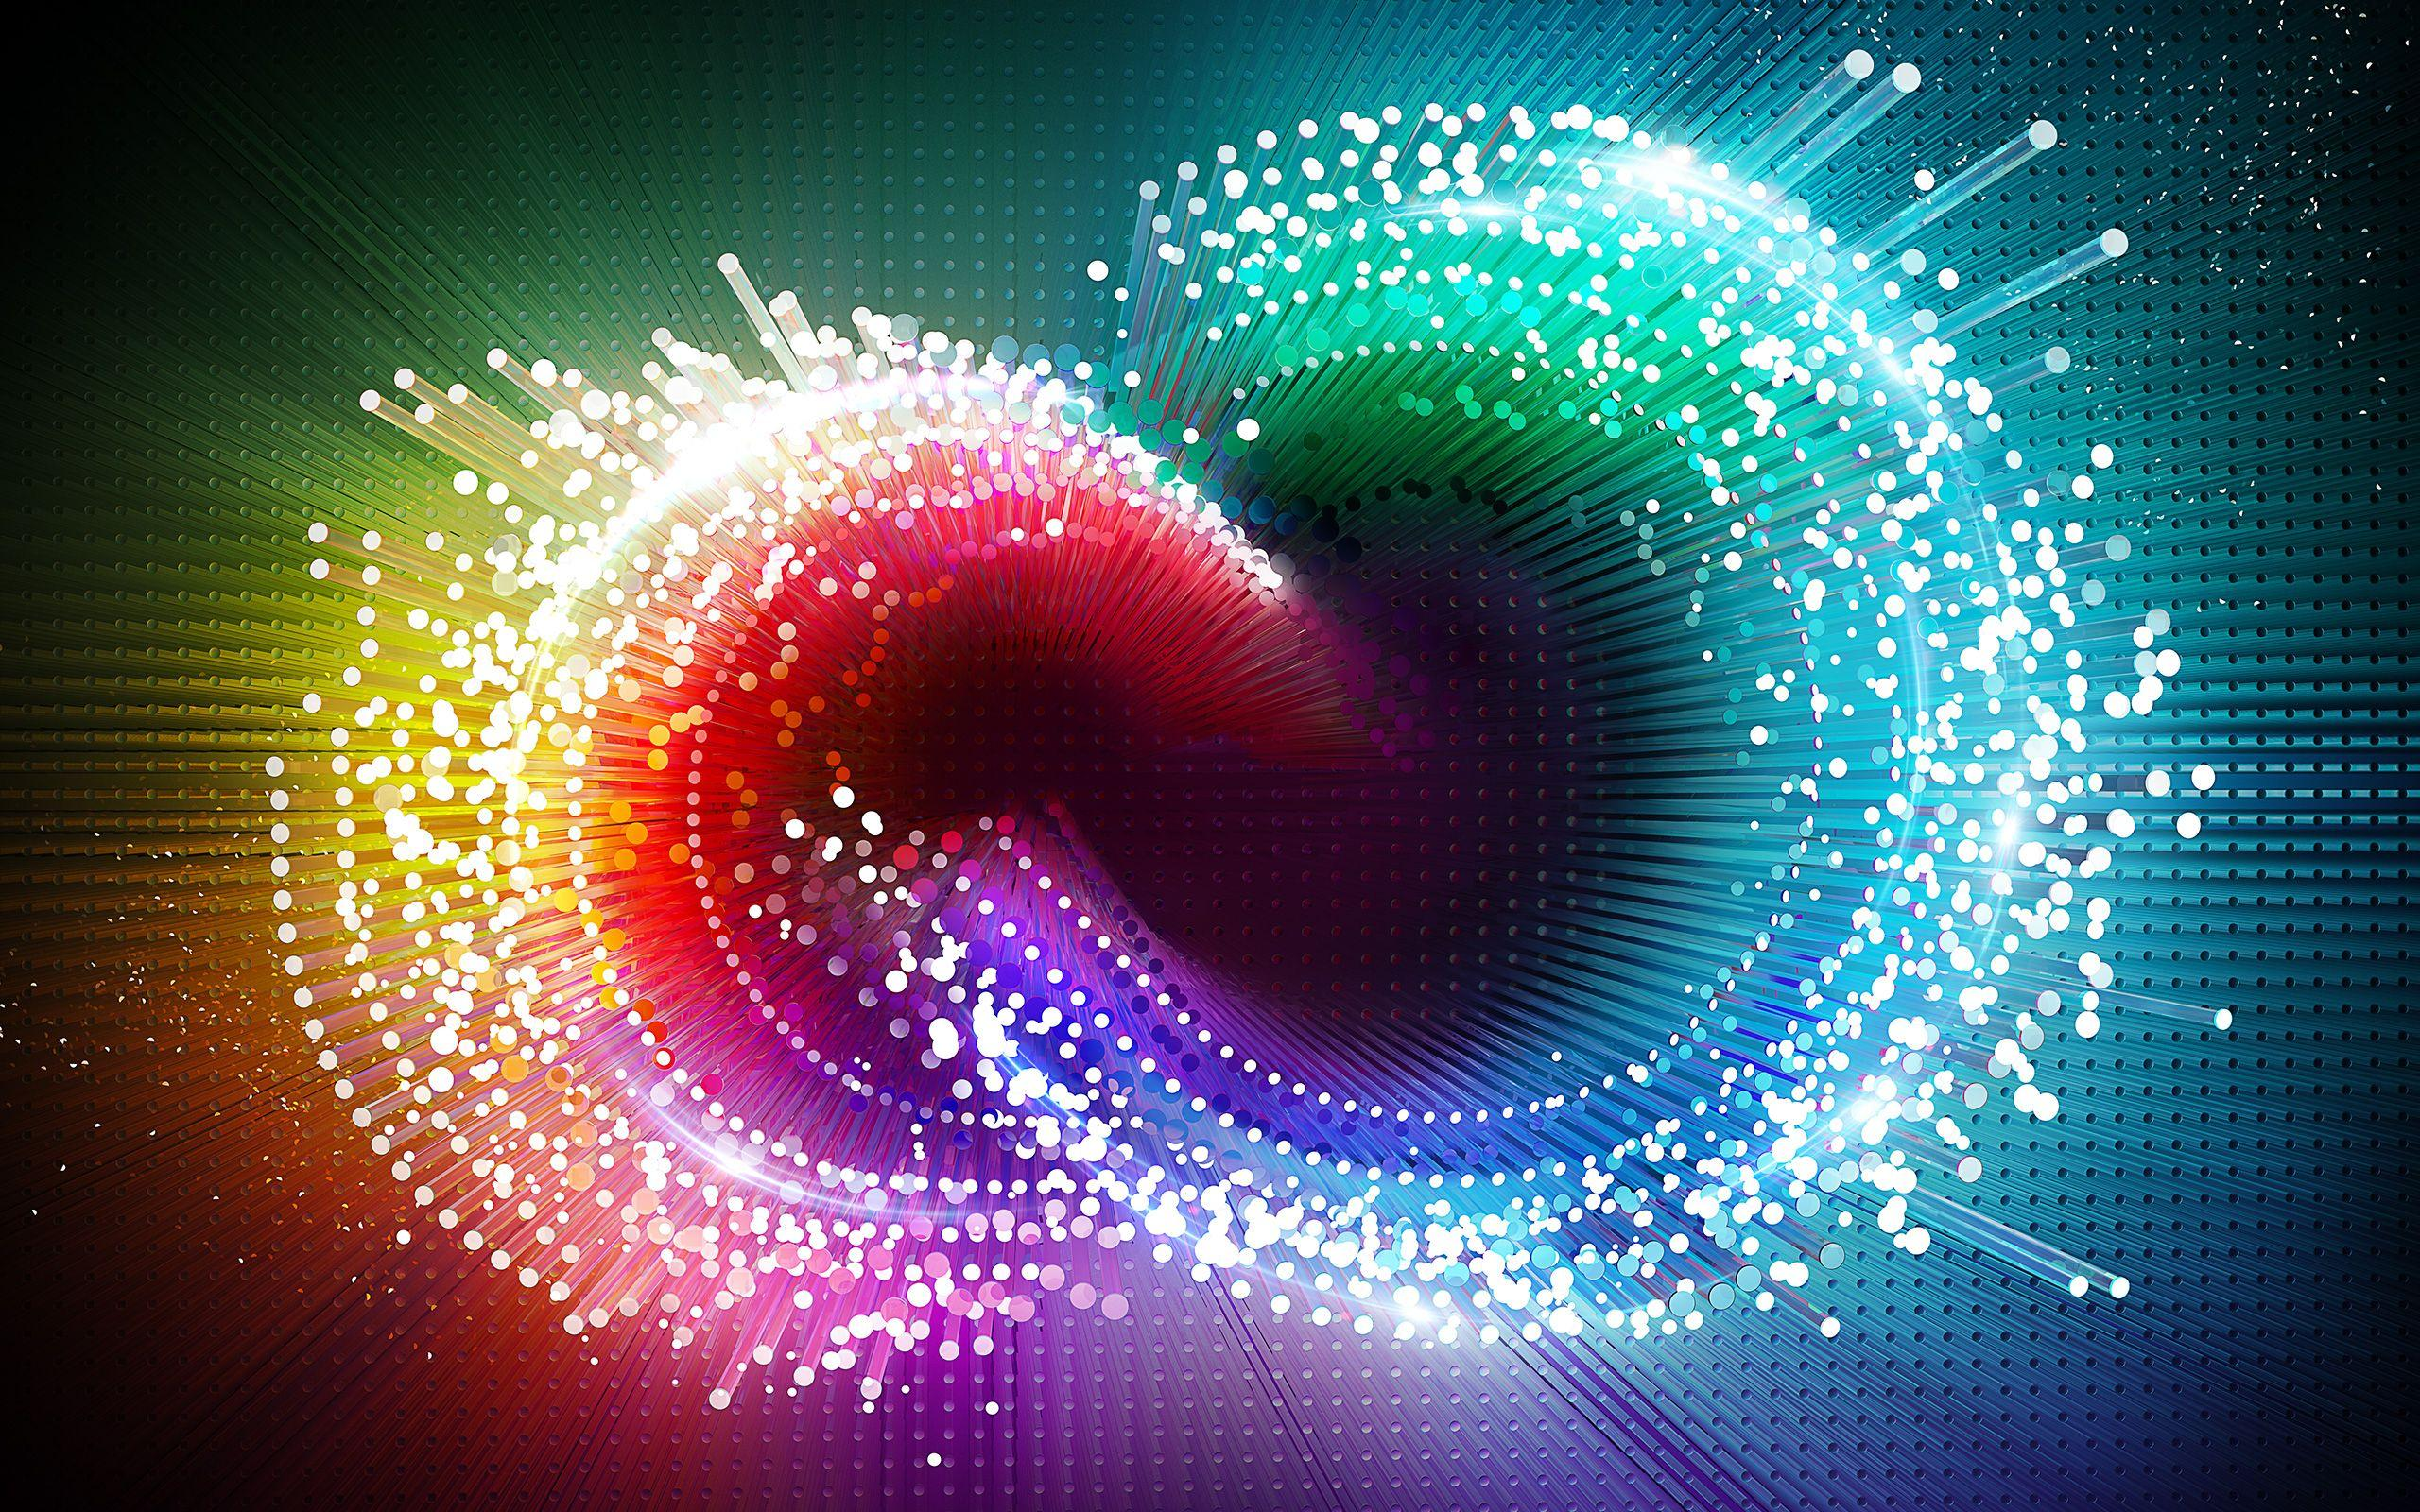 Creative Cloud Wallpaper For All | Creative Cloud blog by Adobe